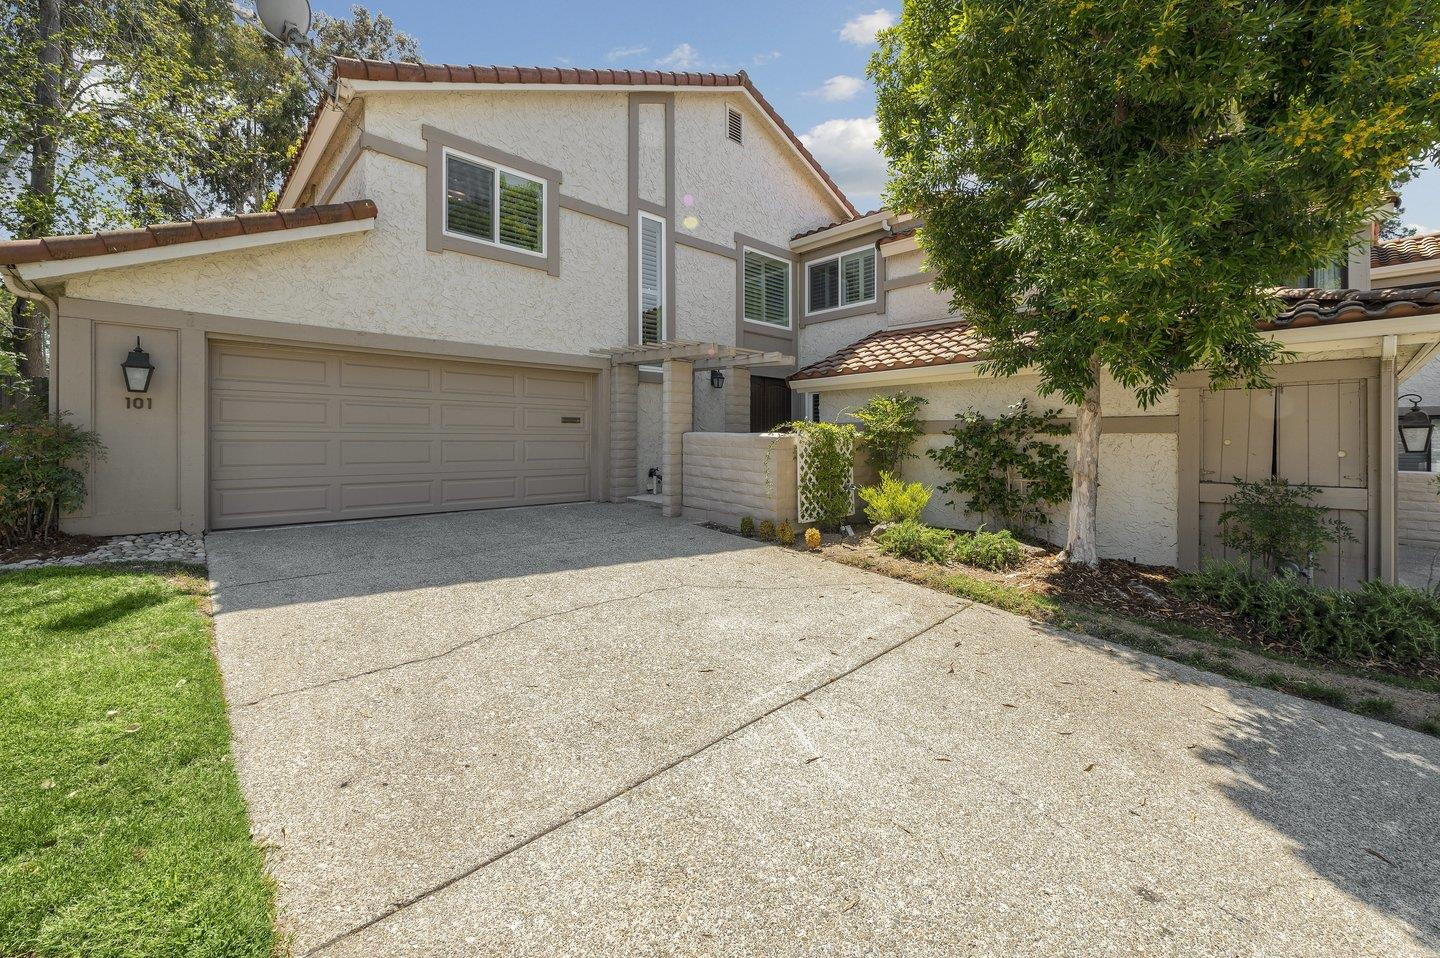 Move in and enjoy this gorgeous 4 bedroom townhome in the Rinconada Hills Community of Los Gatos. Large private 3,329 SF lot. Beautifully remodeled throughout. Stunning open chef's kitchen with stainless steel appliances and breakfast bar island. Double-pane windows and central A/C. Gleaming floors. Elegant crown molding and designer touches. All 4 bedrooms are spacious. Large Master suite. Spacious gated backyard with large covered patio & turf lawn. Attached two car garage plus oversized driveway. Cherish daily strolls within the gated community to clubhouse, pools, tennis & waterfront walking paths. Walking distance to all 3 schools and Safeway. Easy access to Bay Clubs Courtside, Los Gatos Creek Trail, freeways and expressways. Award-winning schools. Wow.